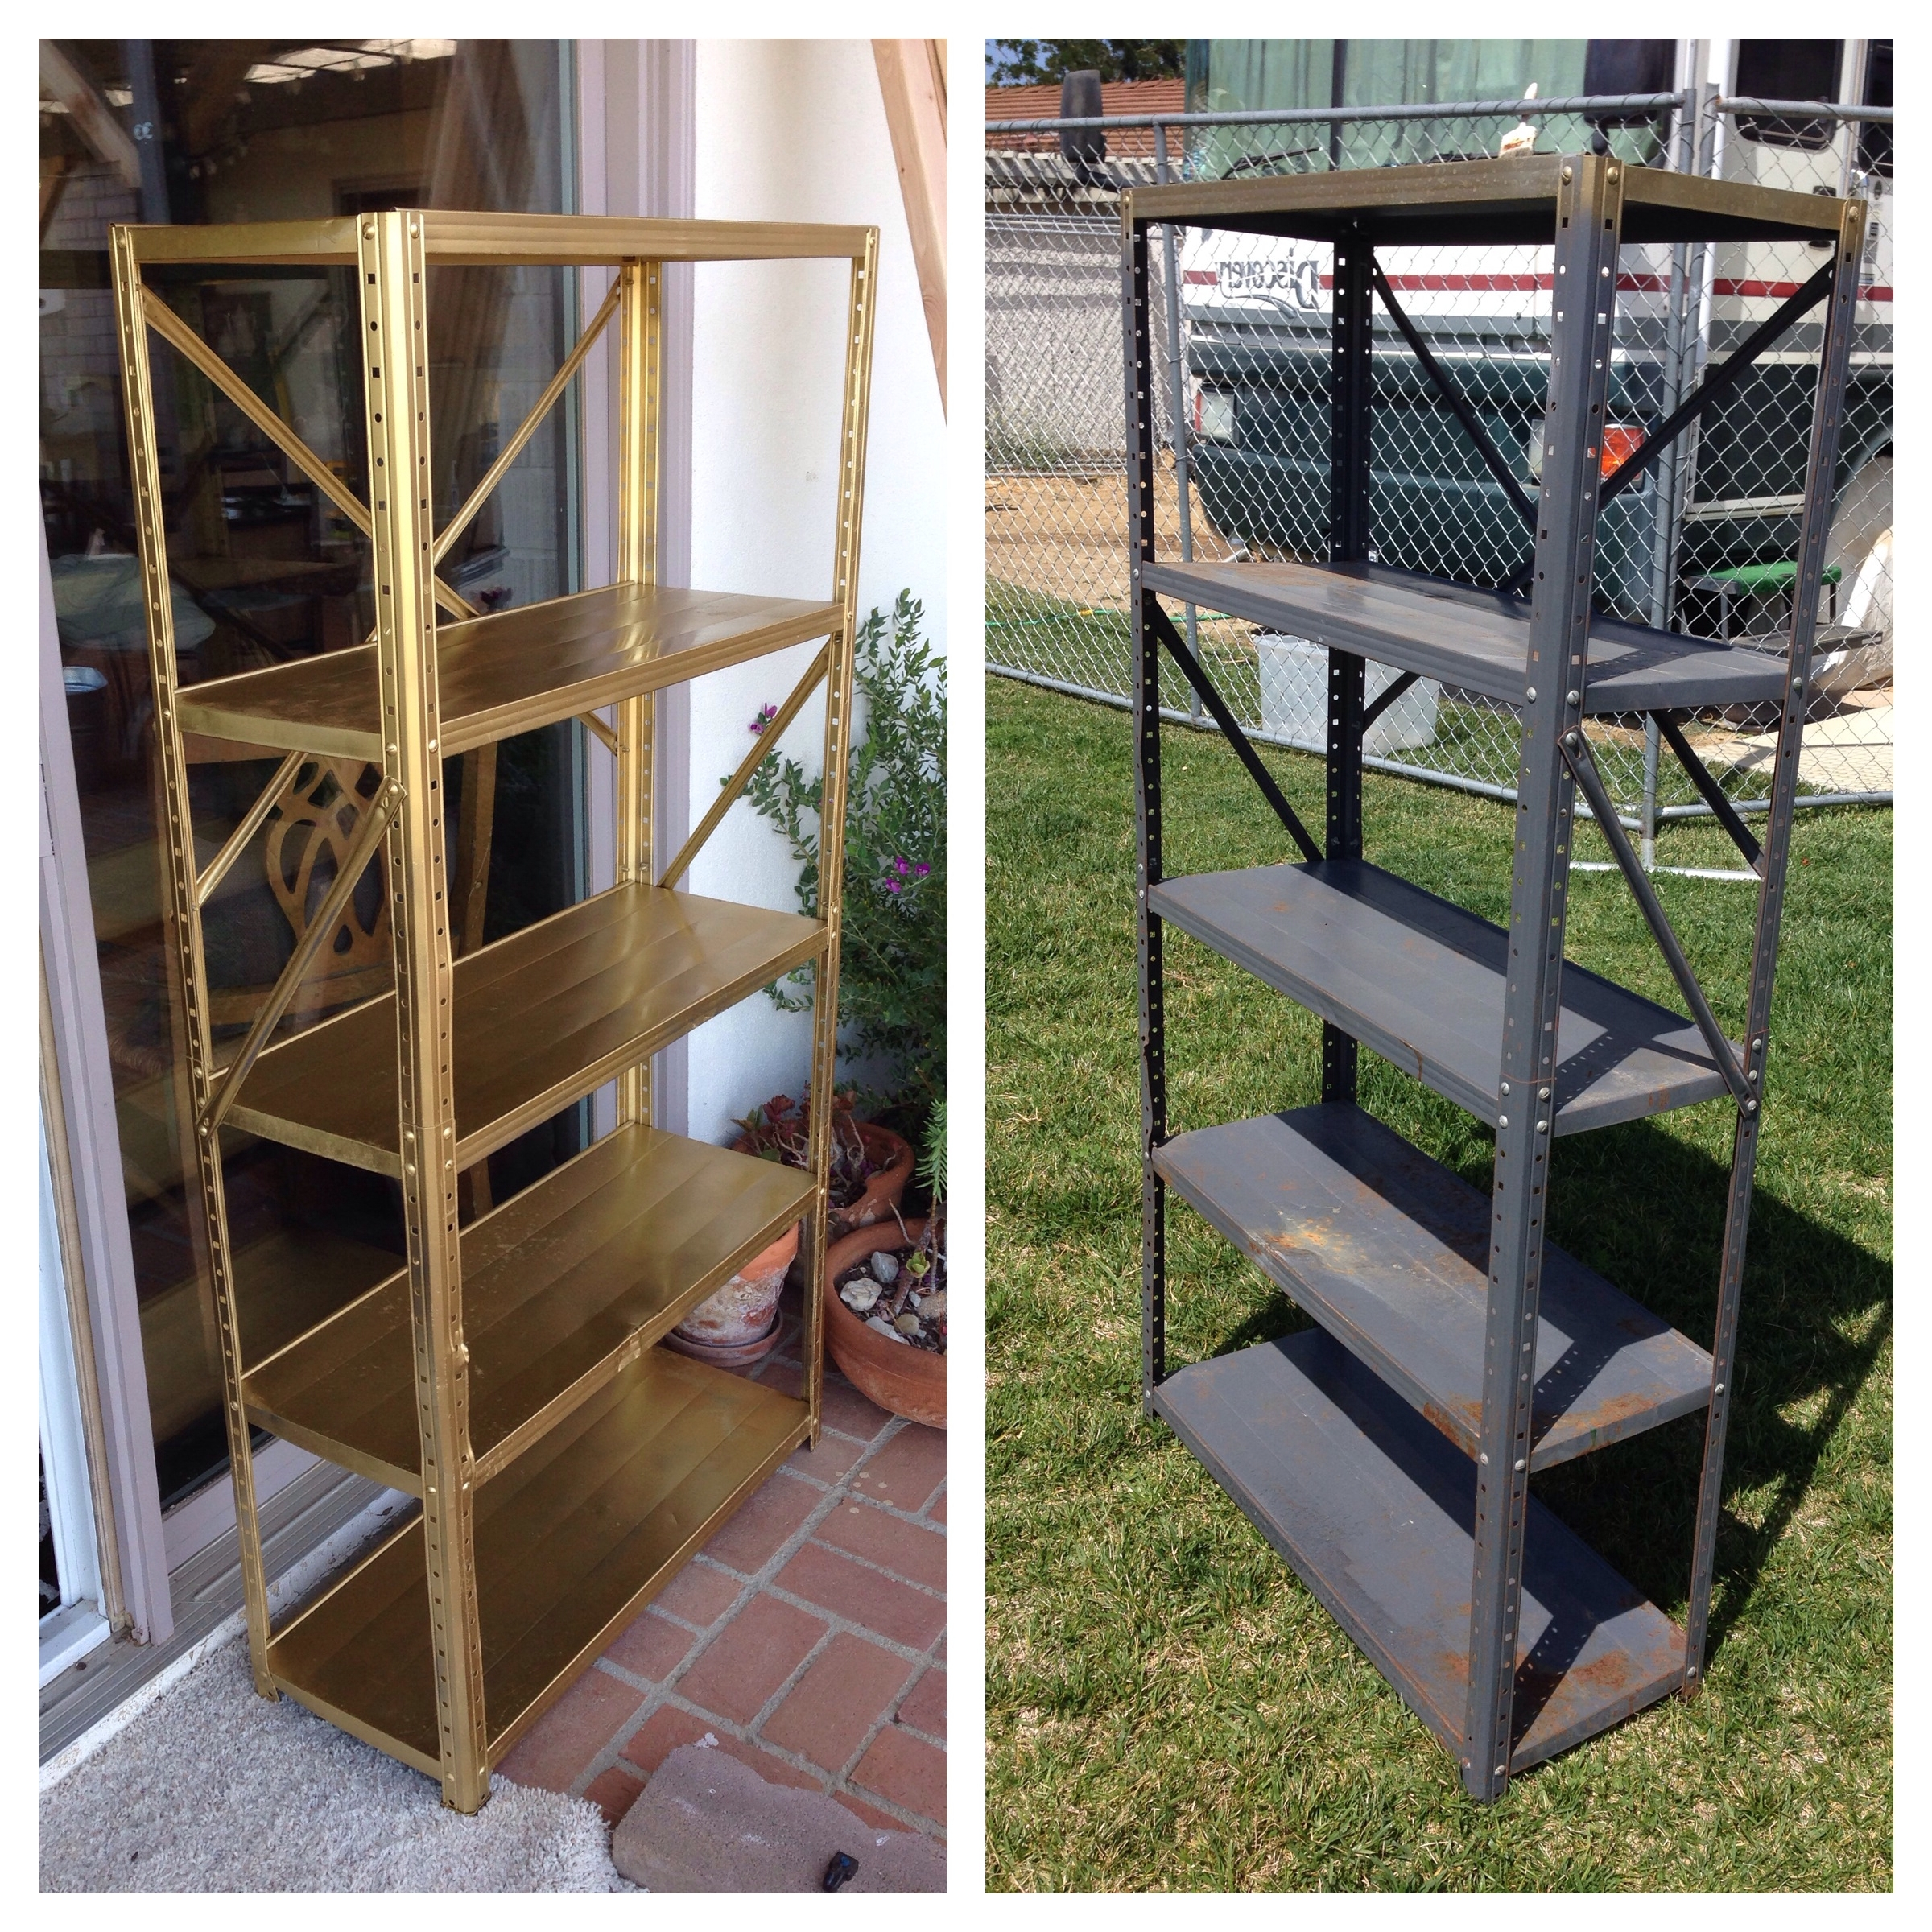 Best And Newest $5 Old Metal Shelf Transformed With Sandpaper And Gold Spray Paint With Regard To Gold Metal Bookcases (View 3 of 15)